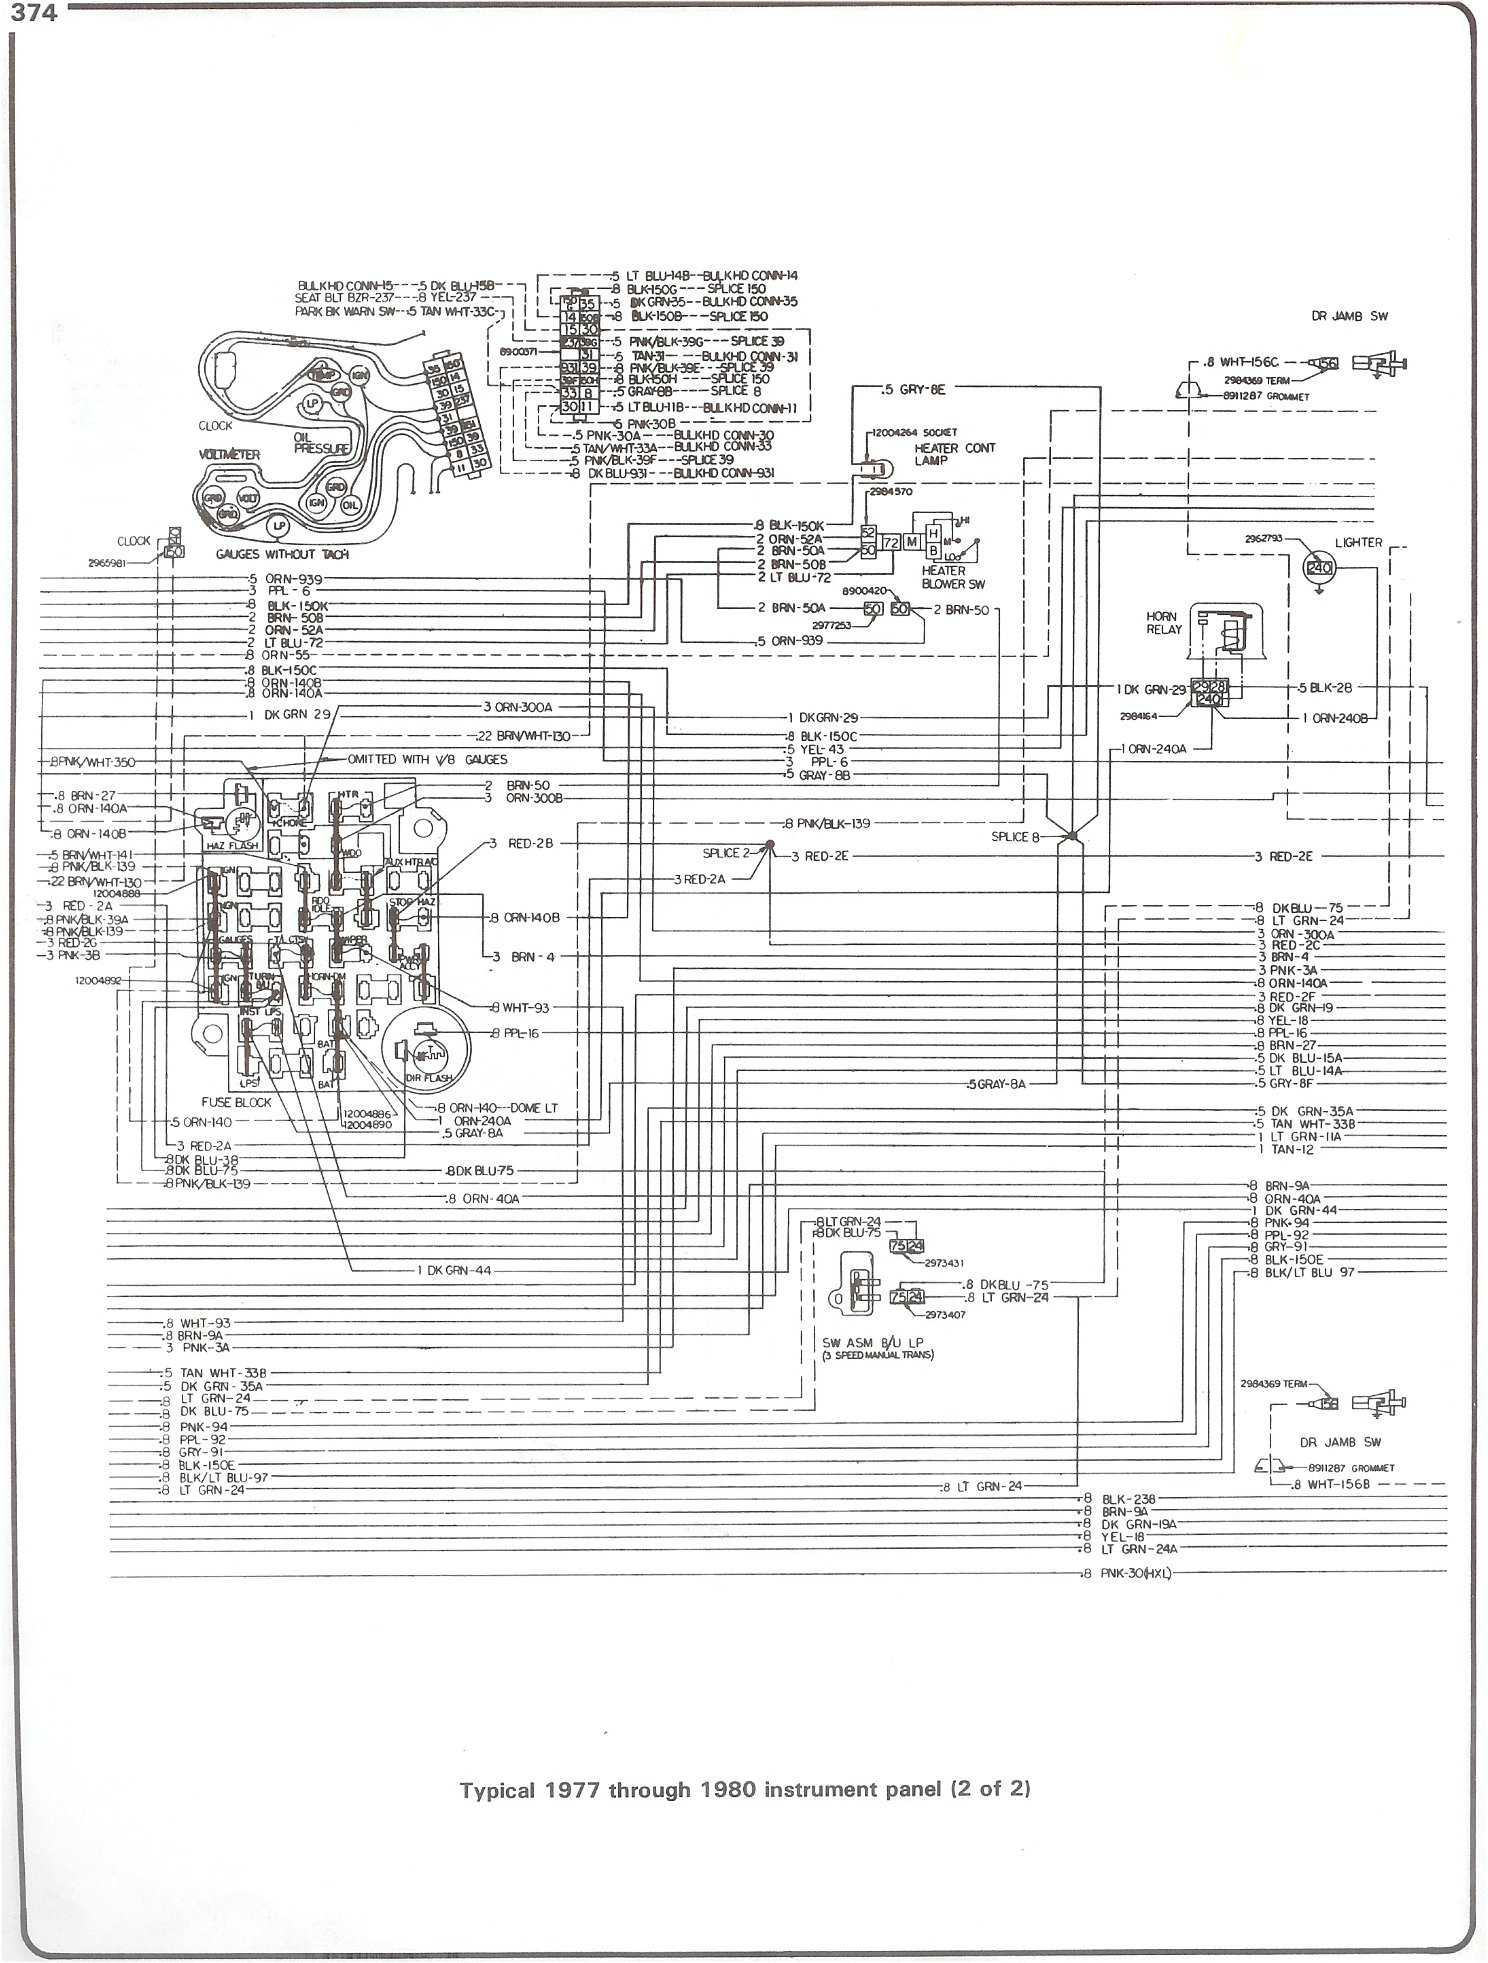 77 80_instrument_pg2 complete 73 87 wiring diagrams Basic Engine Wiring Diagram Chevy at edmiracle.co